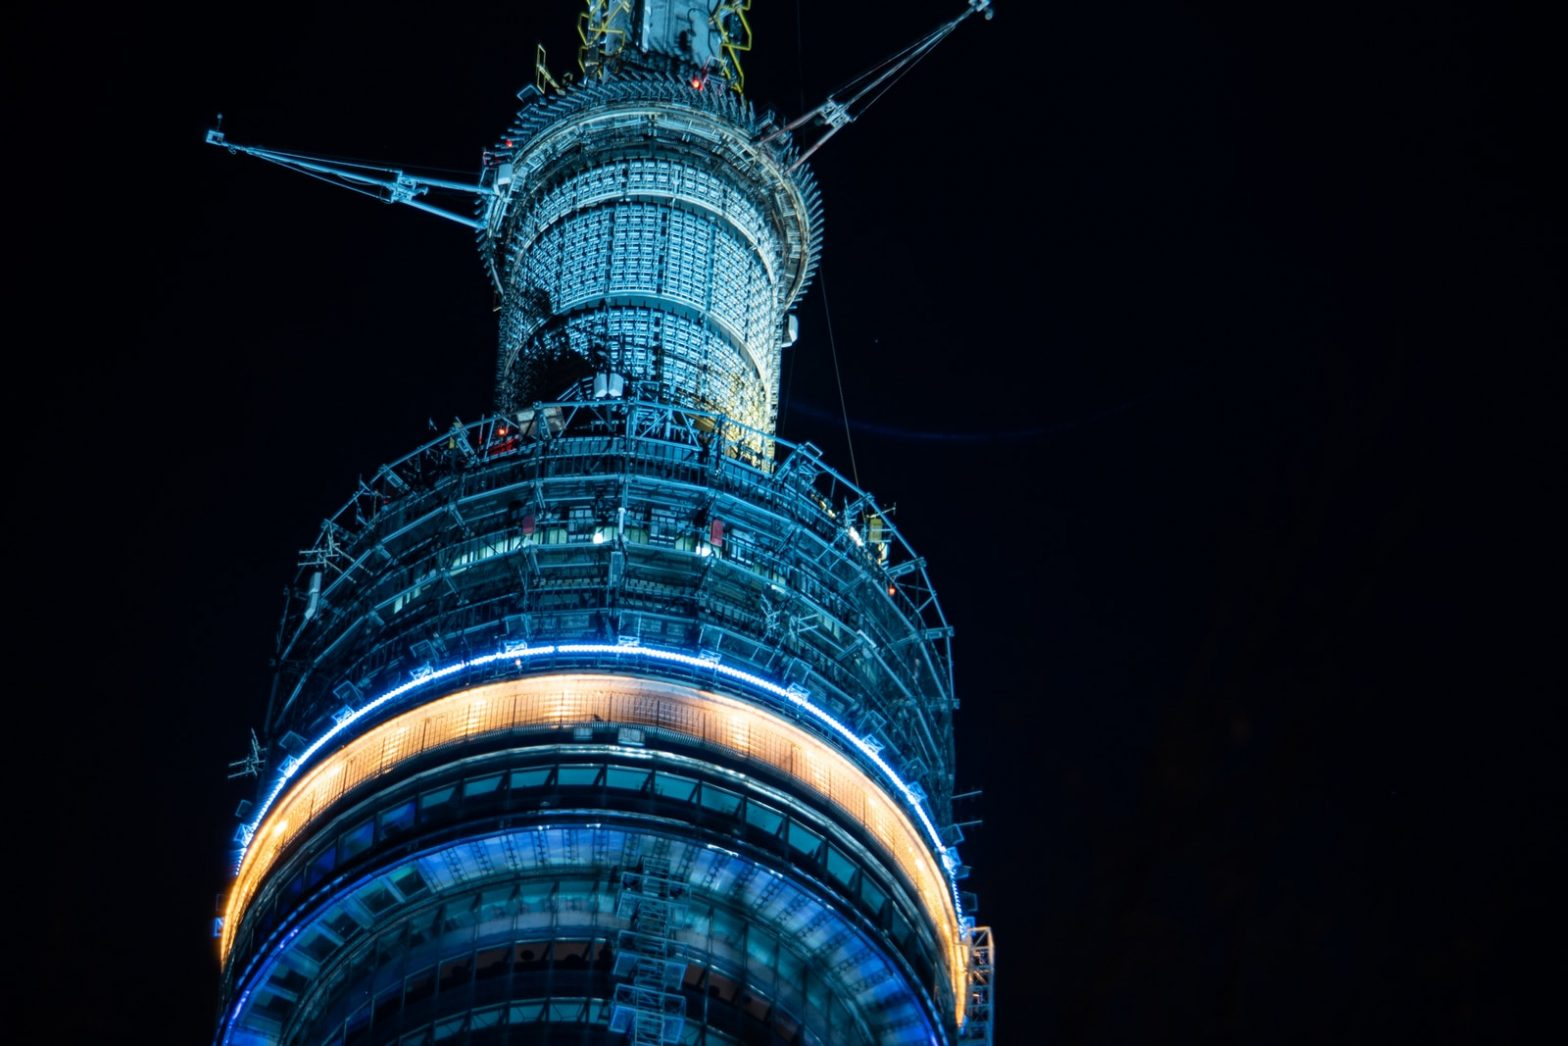 blue and black tower during night time